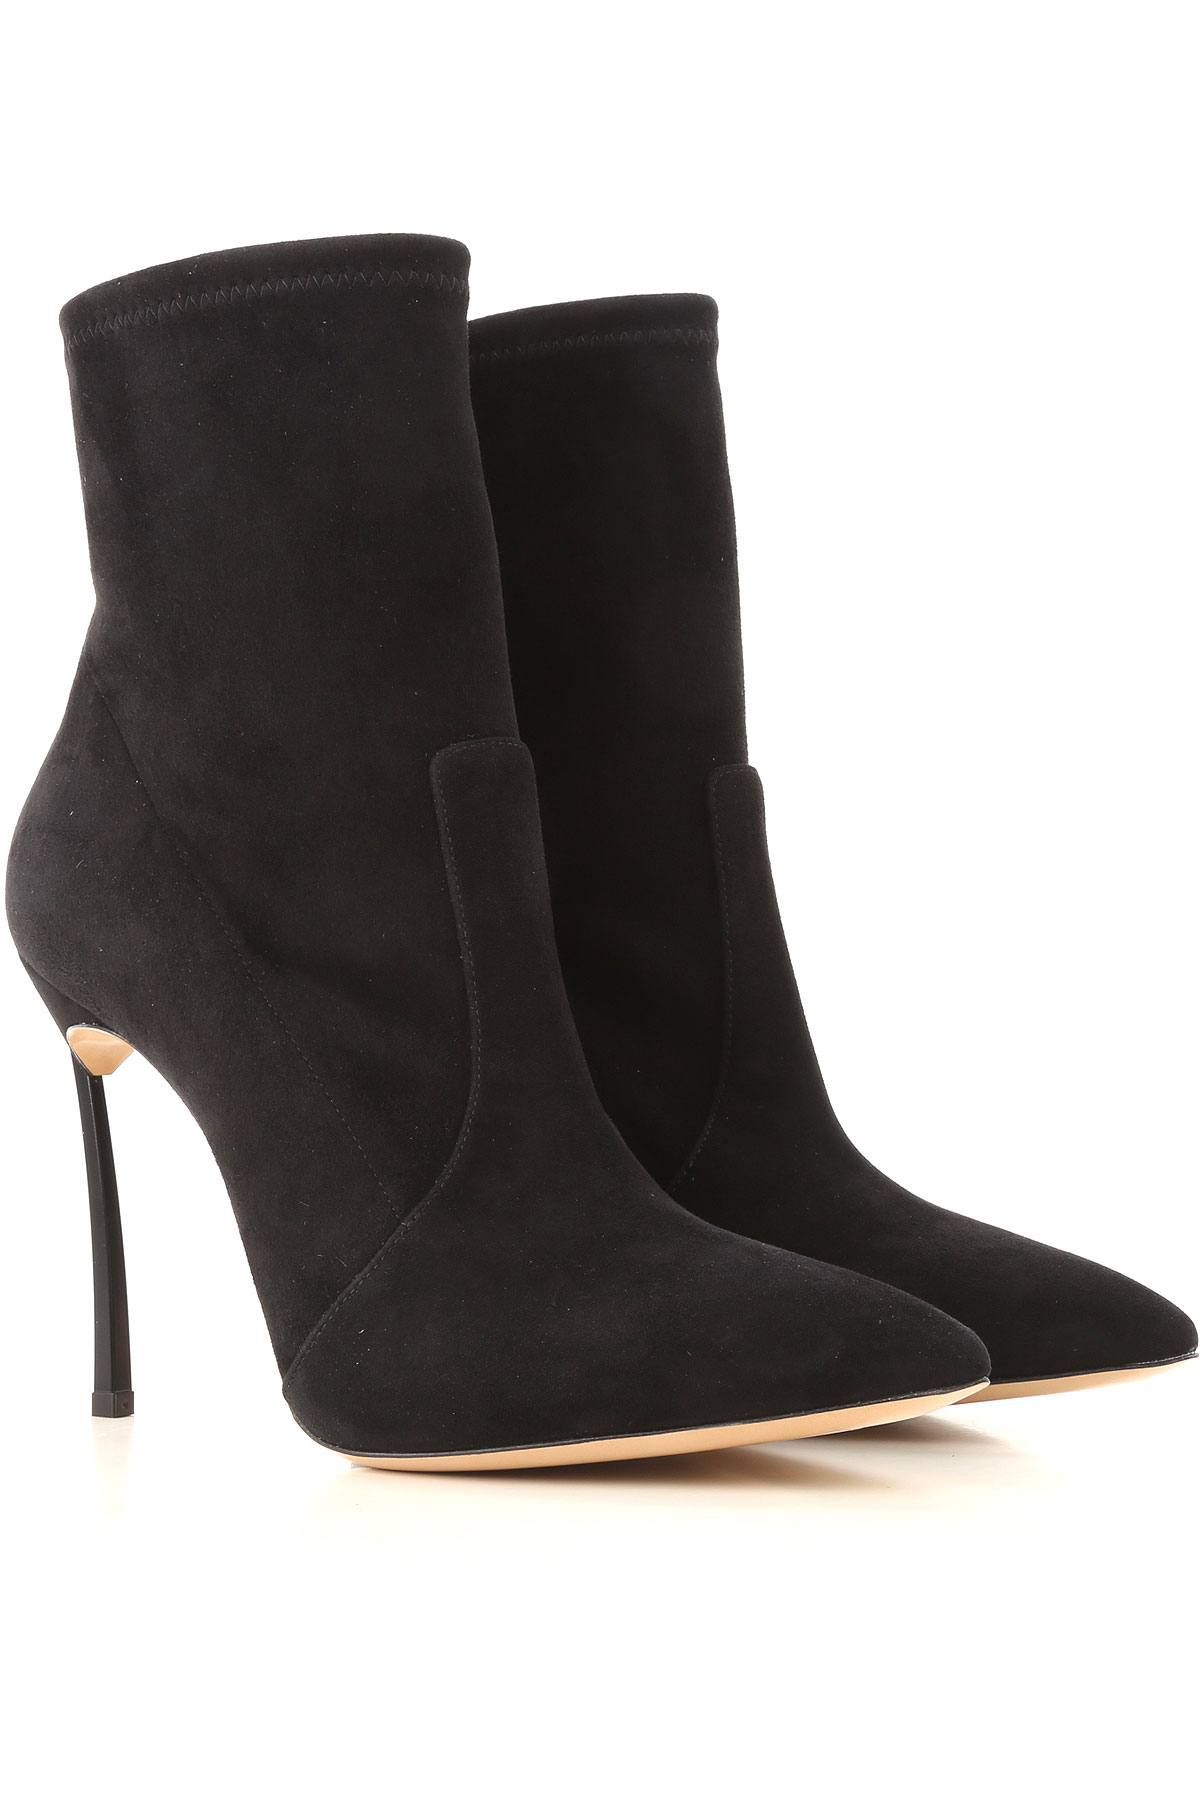 Image of Casadei Boots for Women, Booties, Black, Suede leather, 2017, 10 6.5 7 8.5